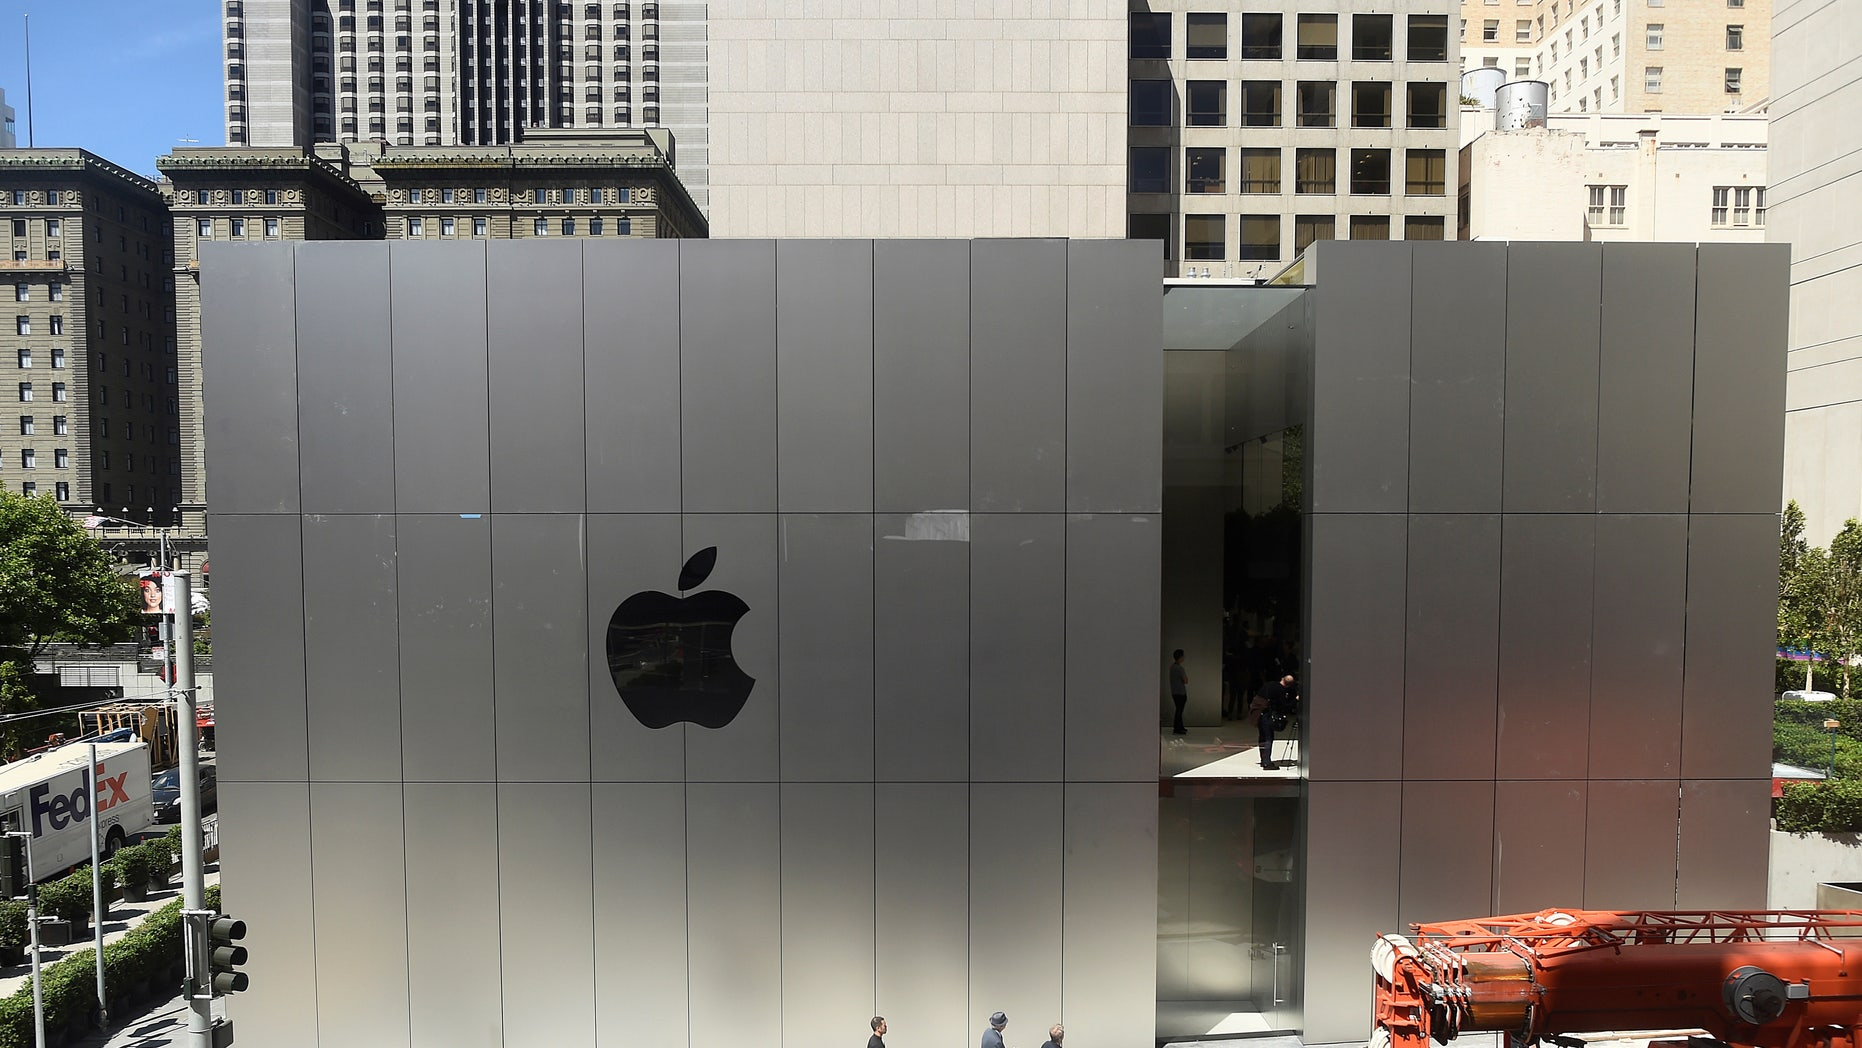 An Apple logo adorns the wall of Apple's new retail store in San Francisco, California, U.S., May 19, 2016. (REUTERS/Noah Berger)